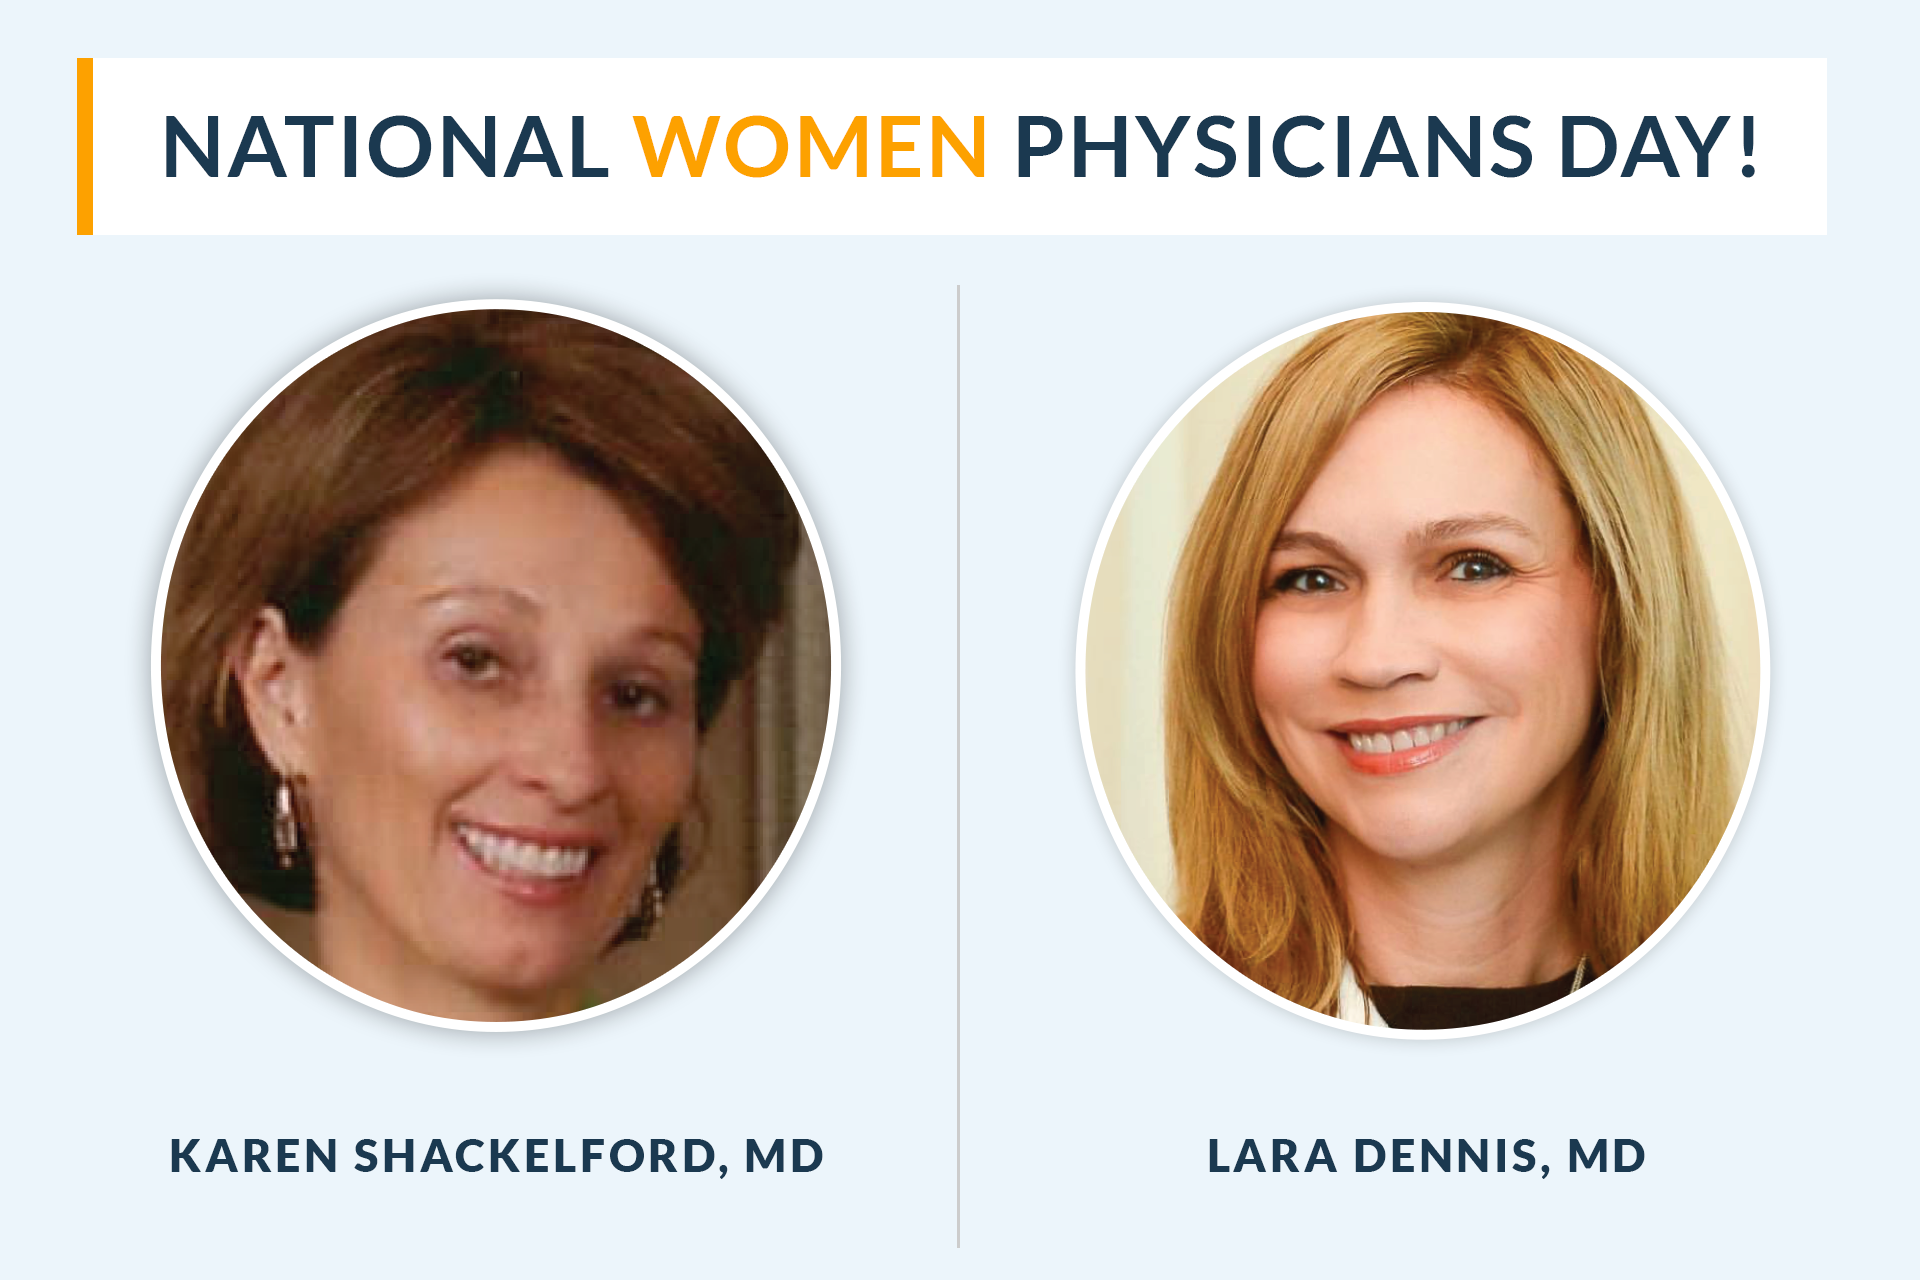 Women Physicians Day: Recognizing BoardVitals' Female Medical Editors